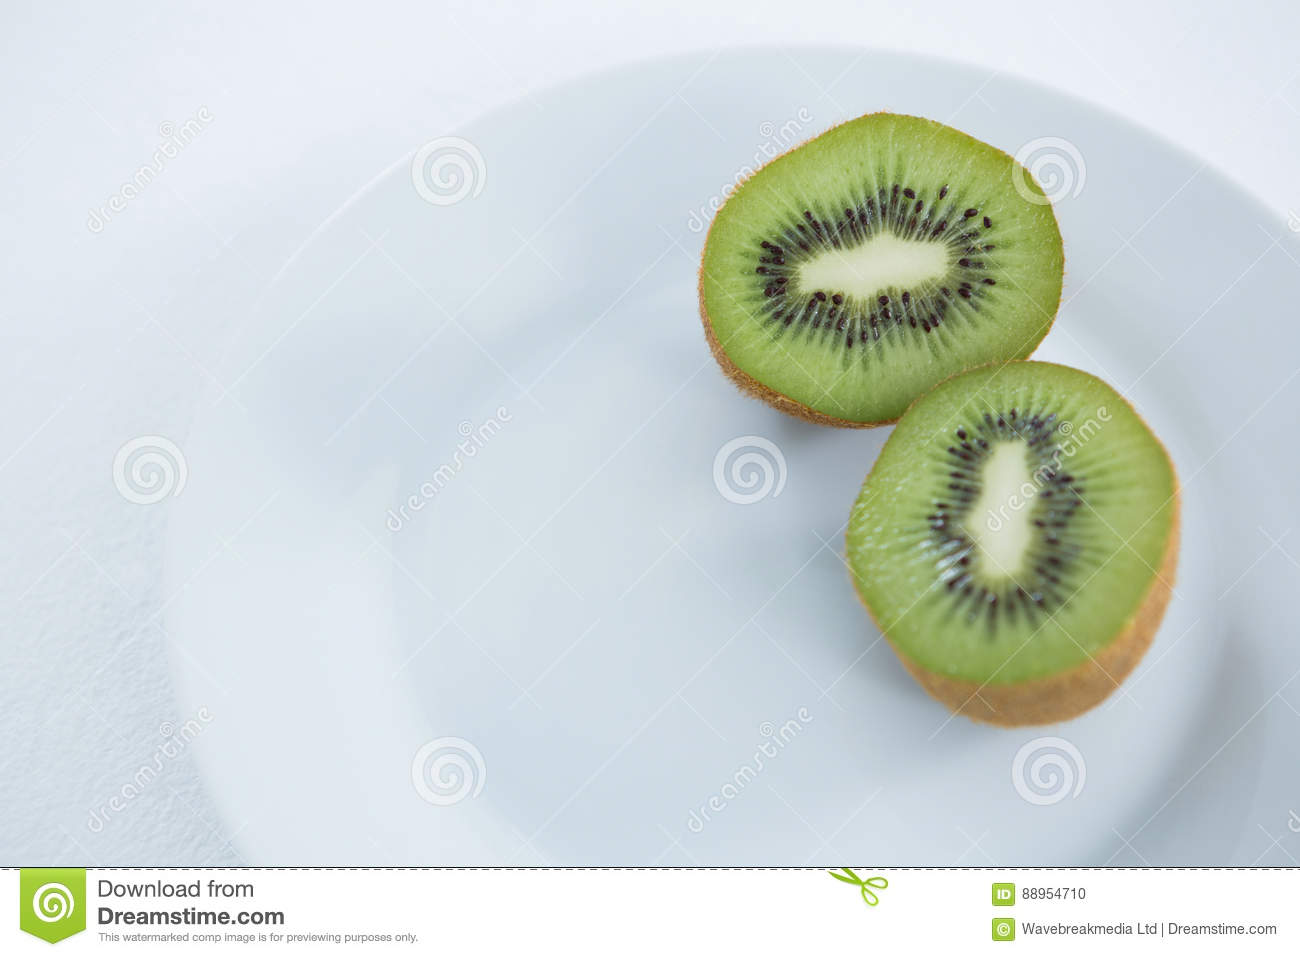 Halved kiwis in plate on white background